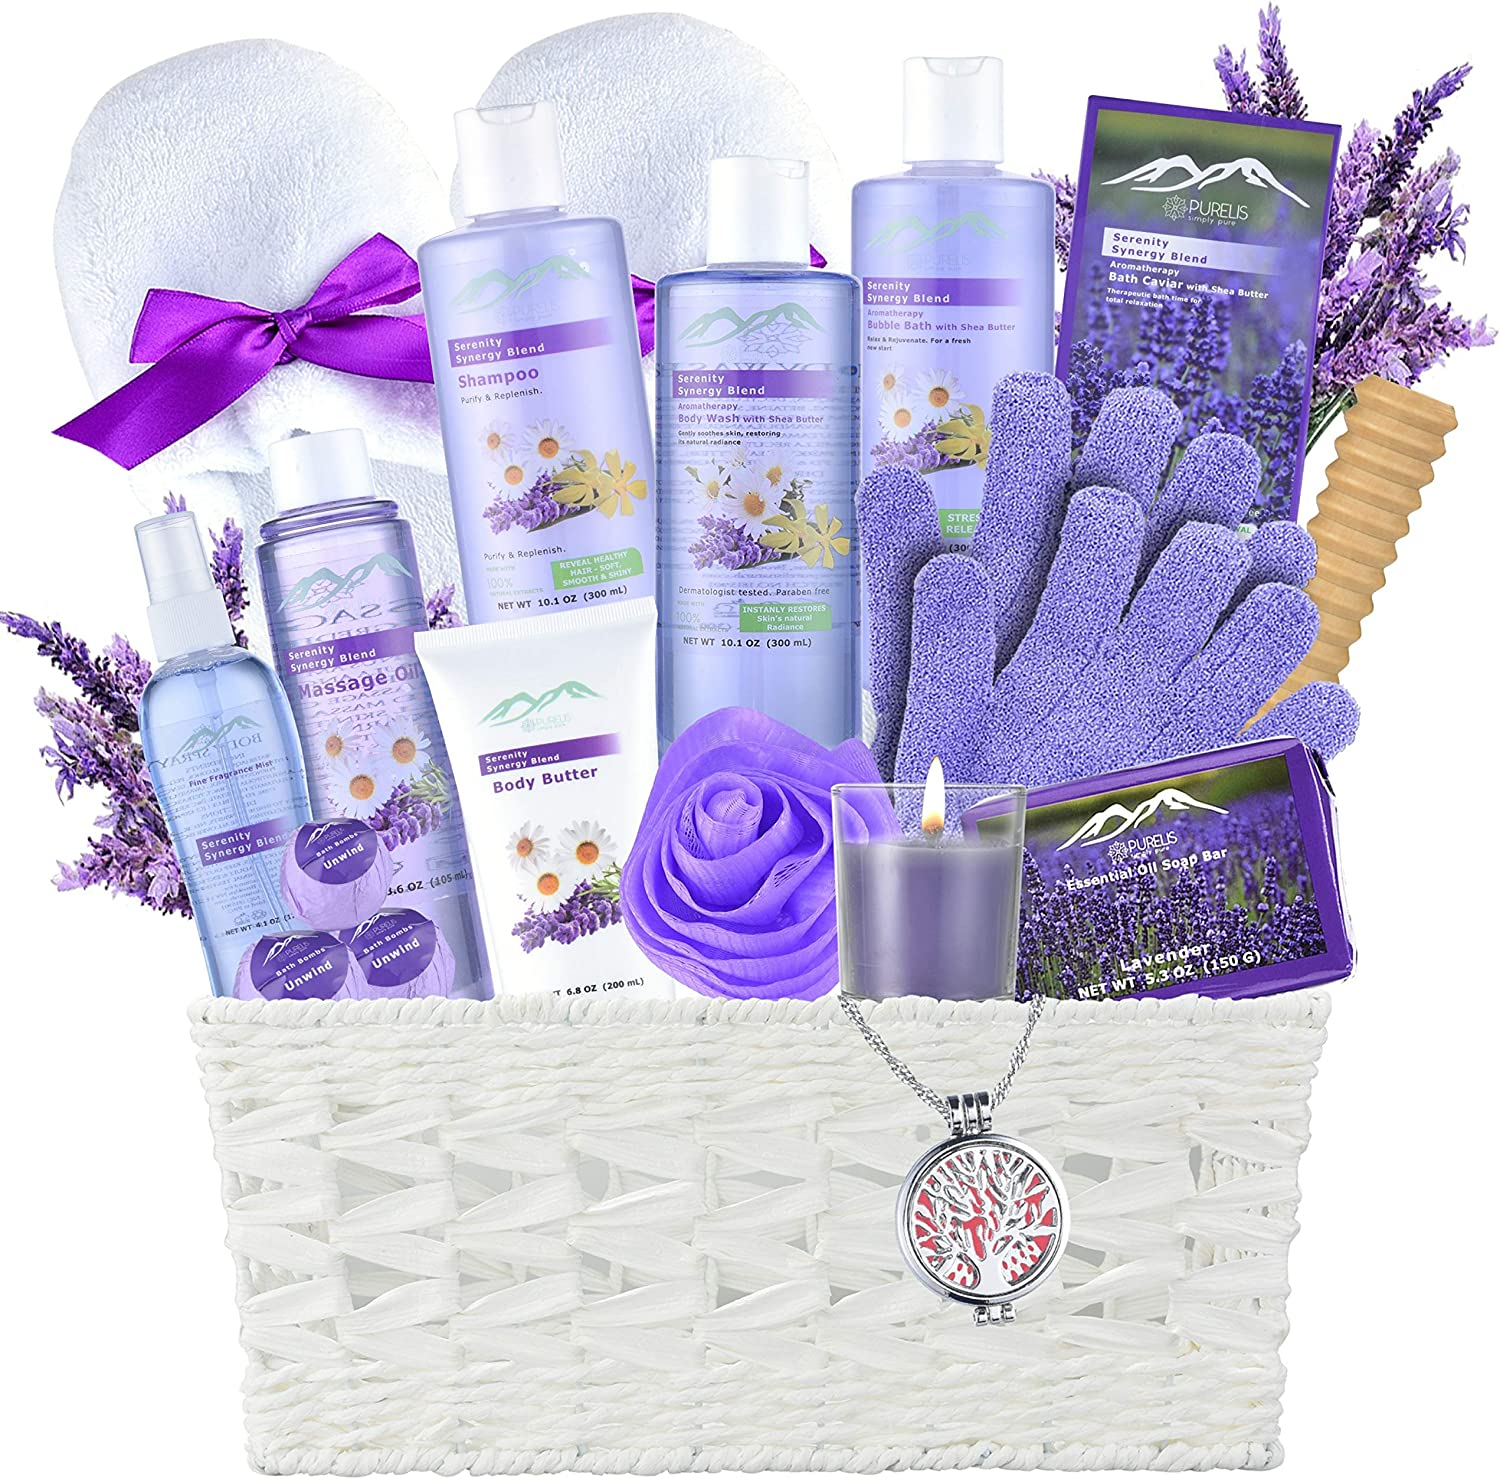 Lavender Gift Basket - #1 Natural Spa Kit - Spa Basket for Women & Men. Bath and Body Home Spa Set Includes 20 Spa Gifts with Essential Oil Necklace! Beauty Basket- Unique Gift Idea for Girl Friend